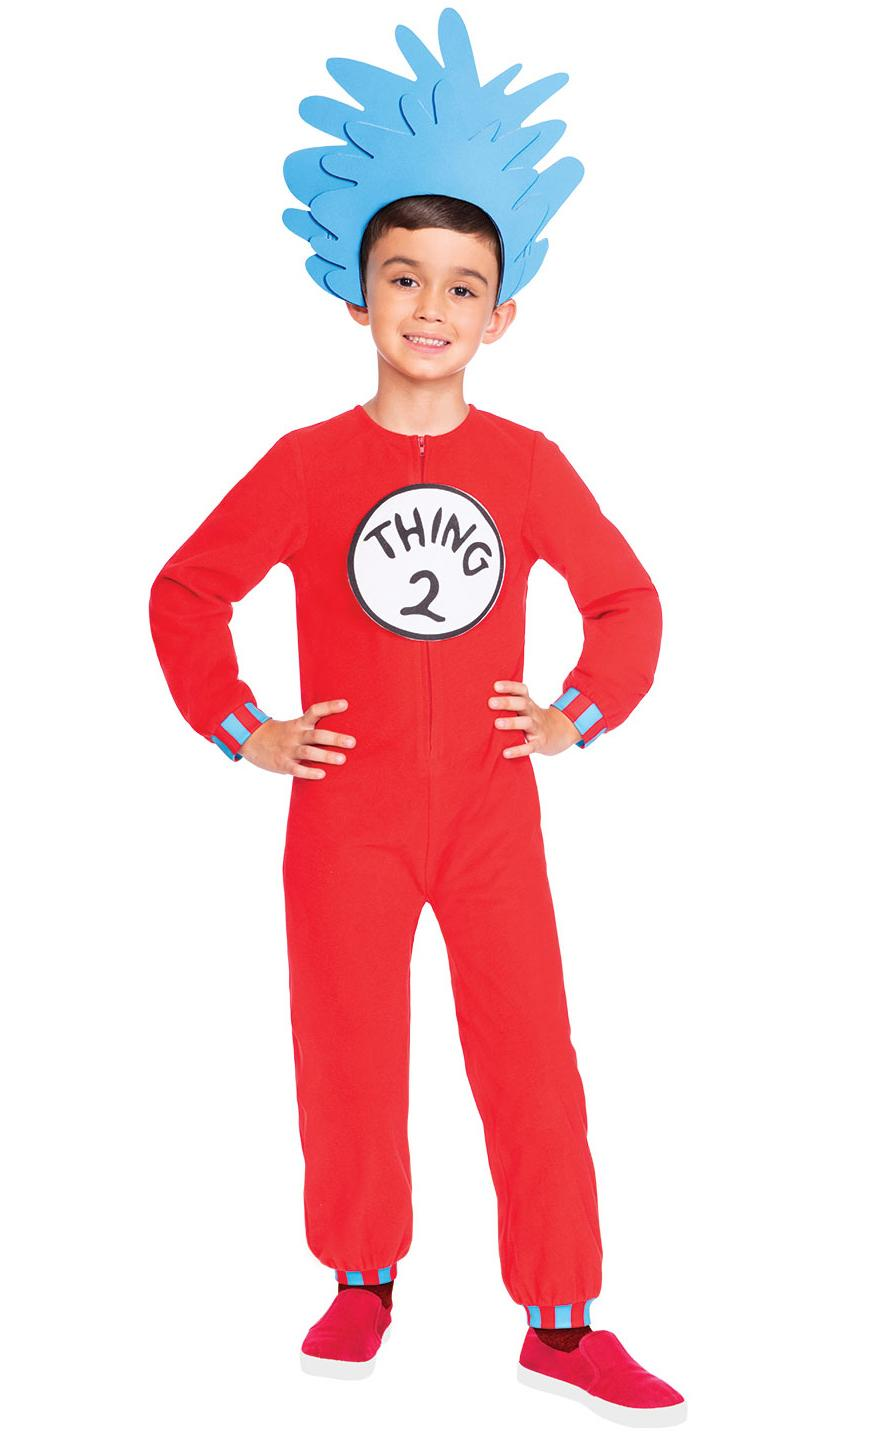 Kids Thing 1 or Thing 2 Costume